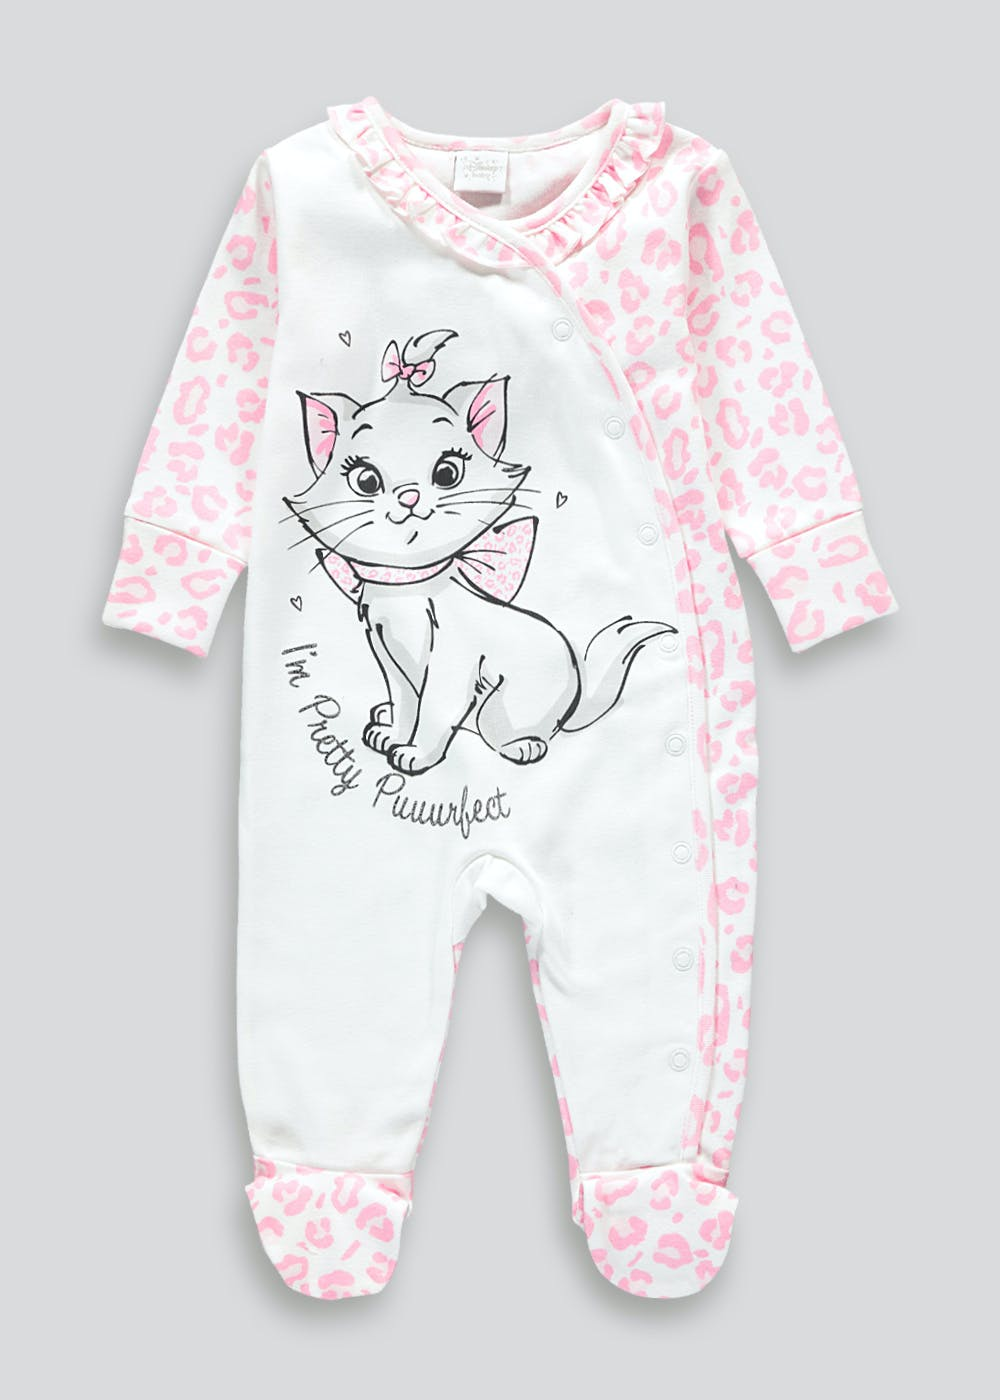 What Happens at Grandmas Stays at Grandmas Baby Boy Girl Sleepsuit Vest Baby Grow Made in England 100/% Cotton